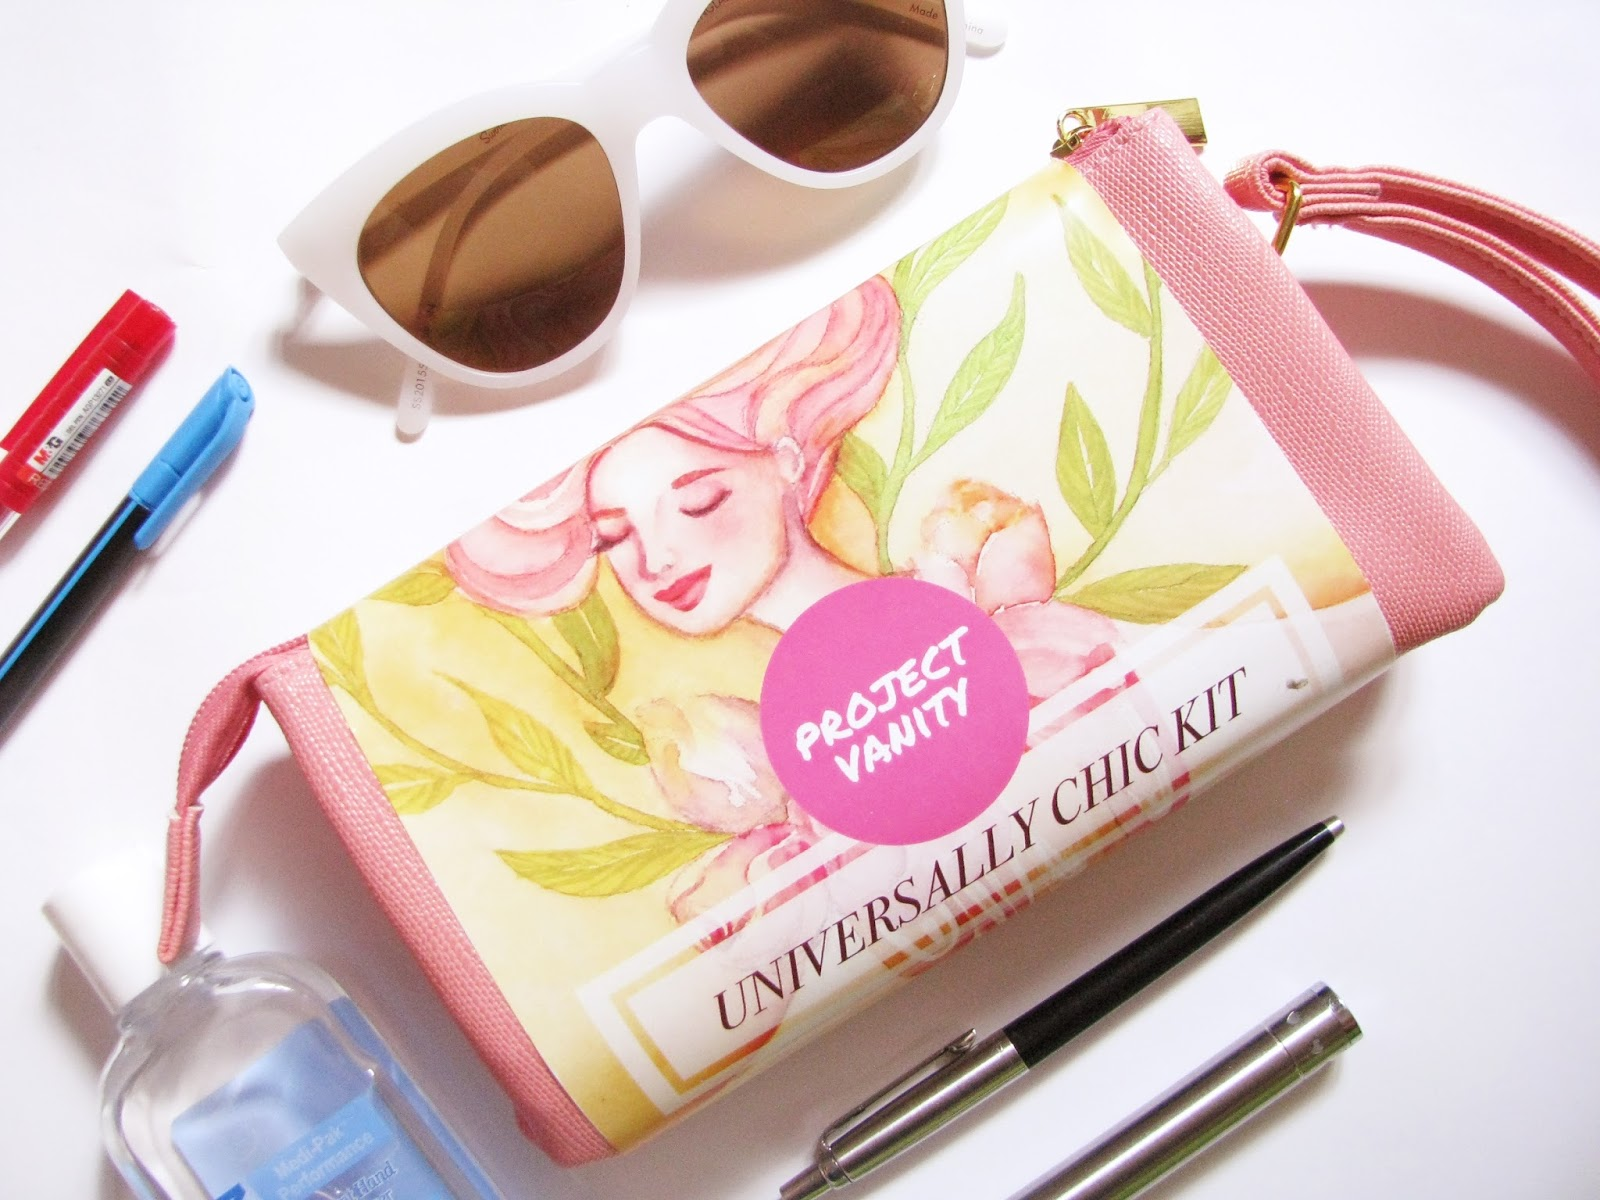 Project Vanity Kit Contents Universally Chic Kit